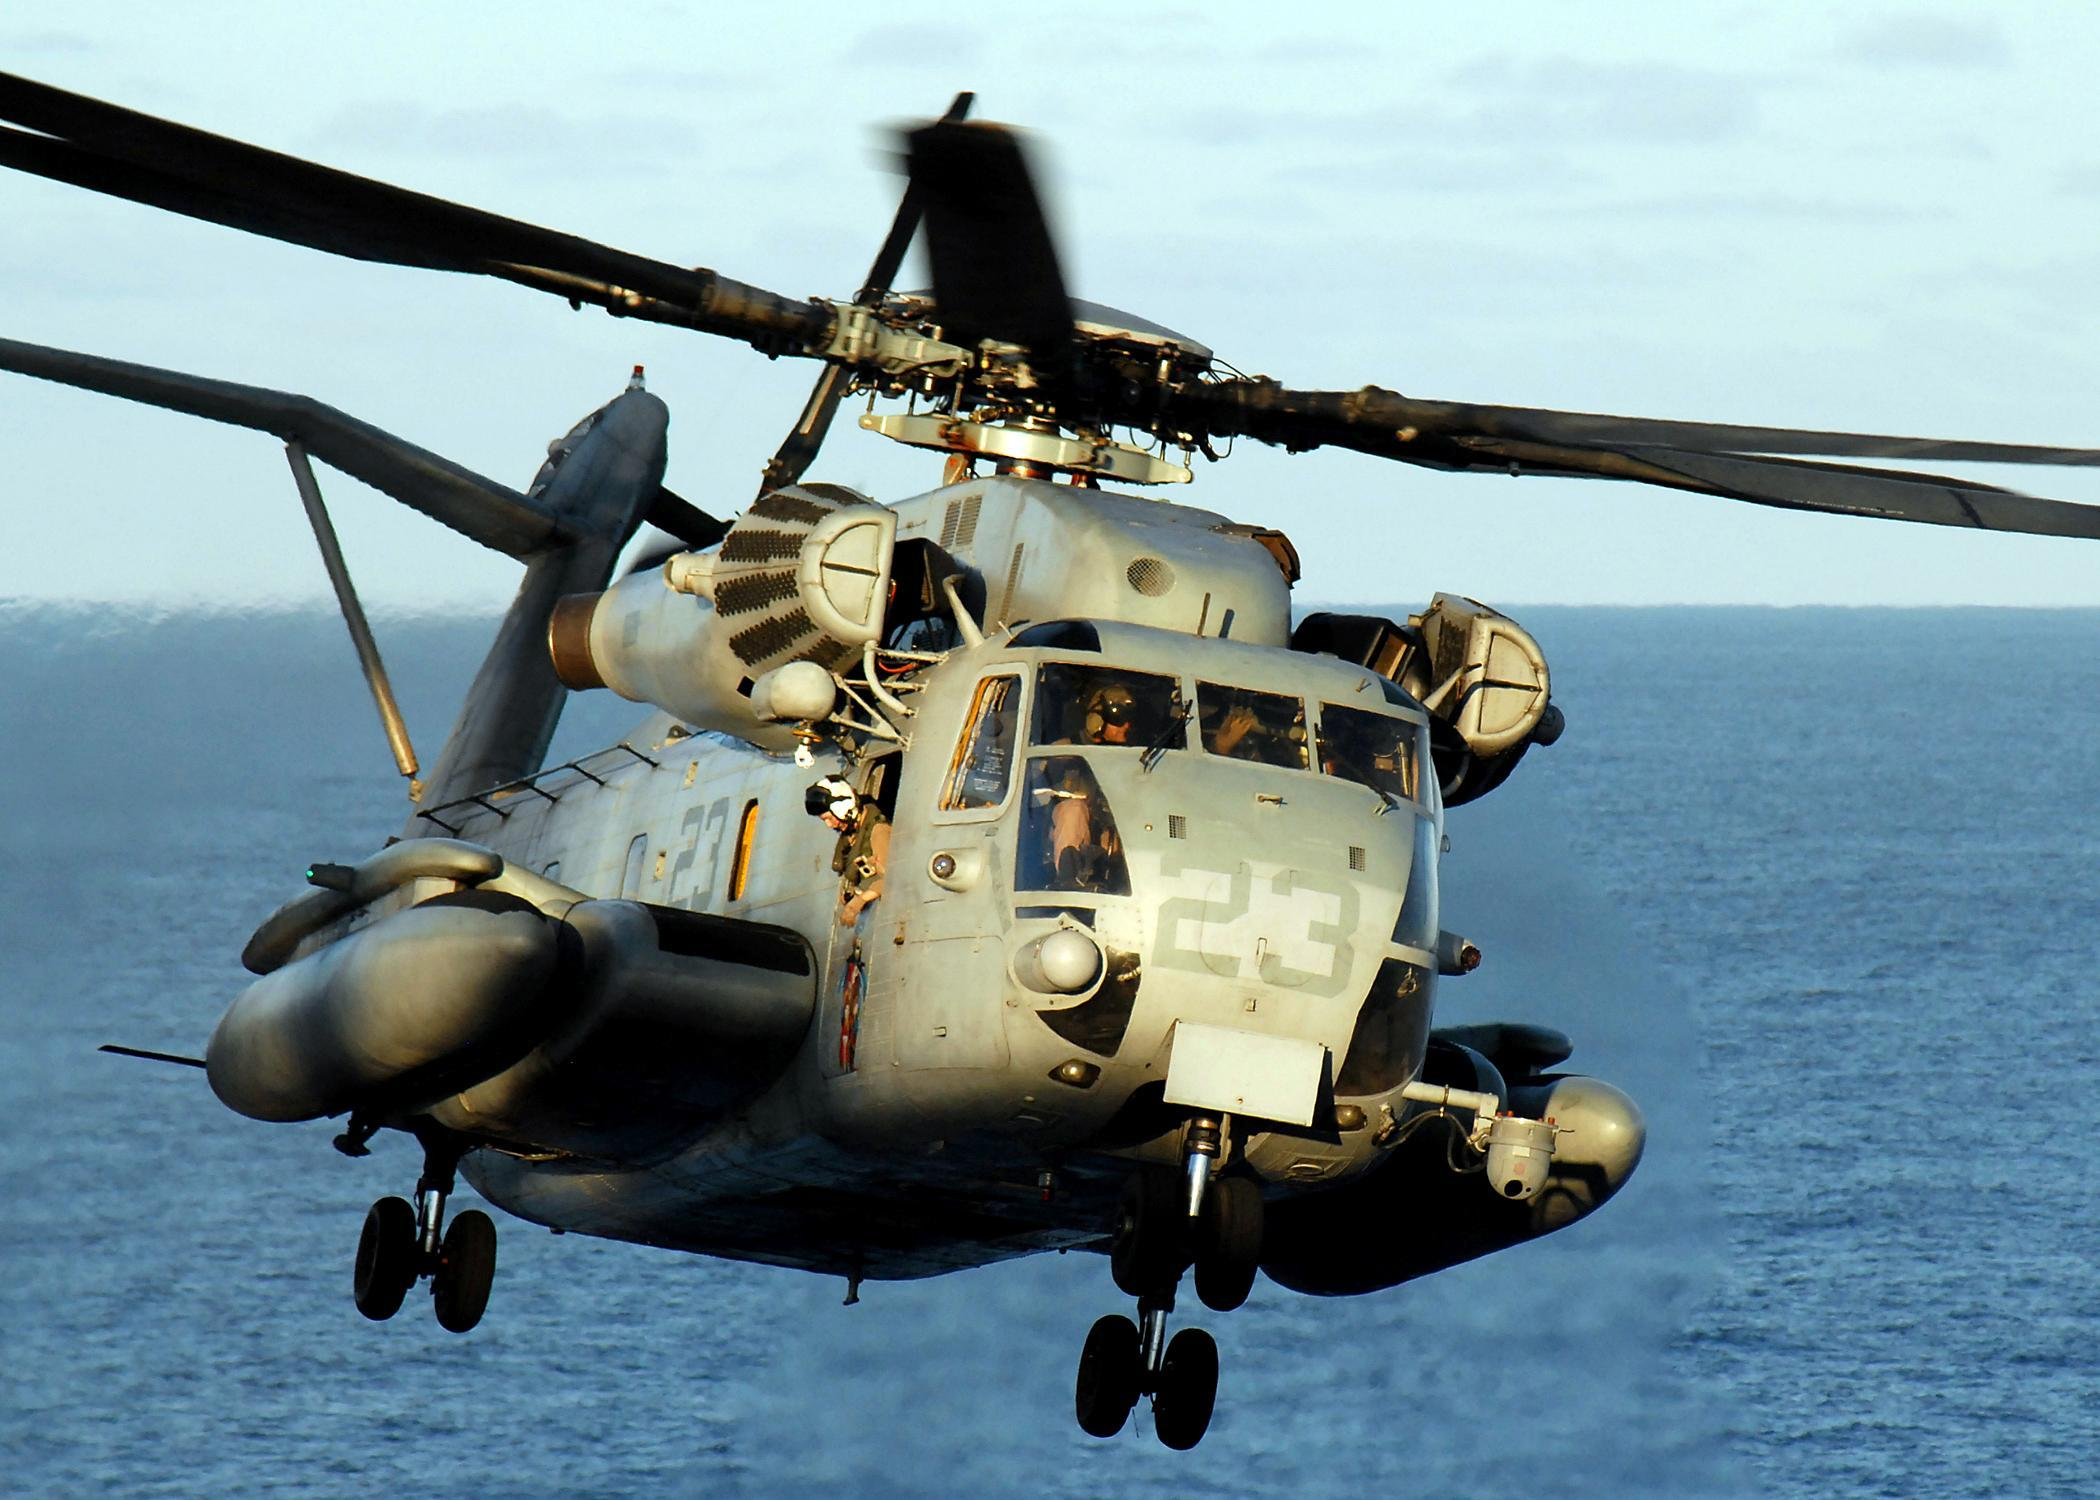 Marines Call Helicopter Escape 'Miracle'